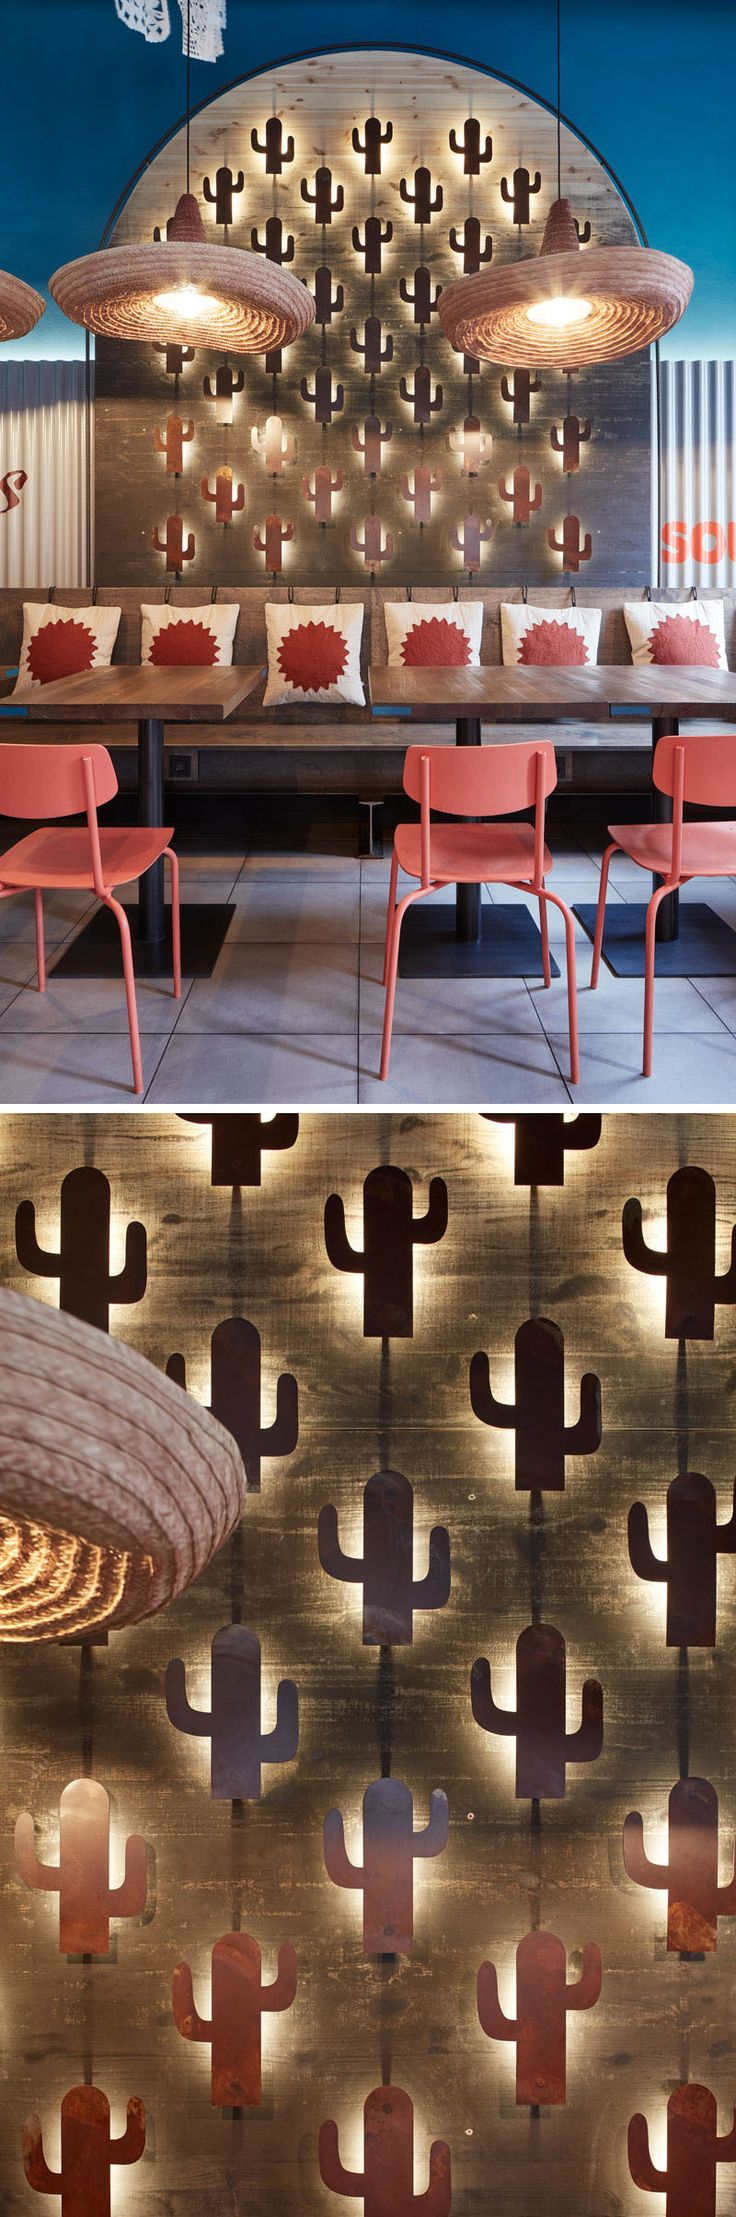 This modern Mexican restaurant features cacti motifs throughtout, like mini cacti on the wall that are backlit. #RestaurantDesign #InteriorDesign #Cacti